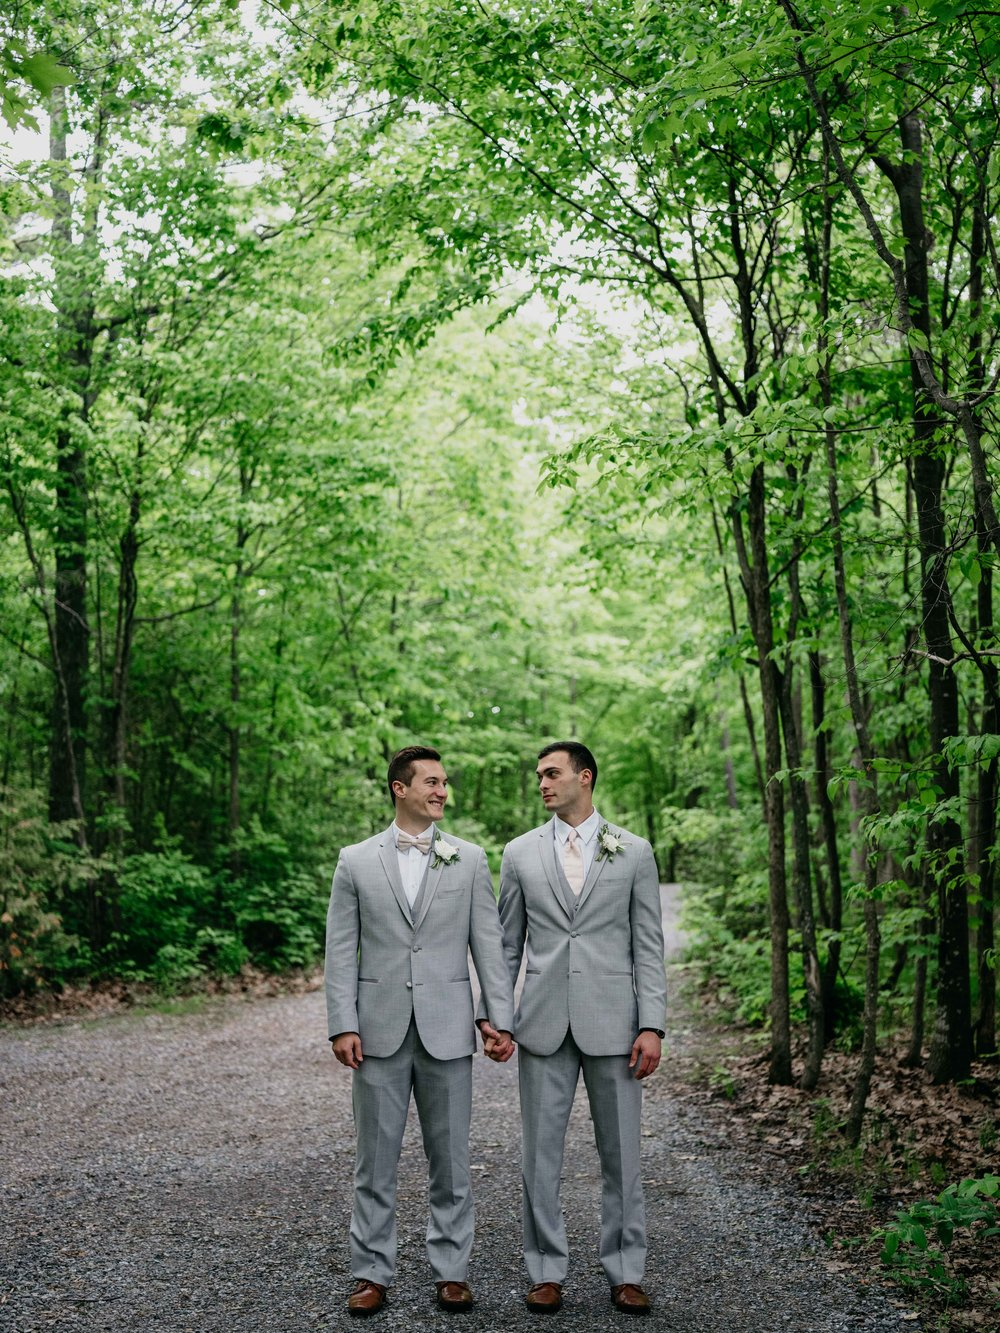 06032017-nick-evan-vermont-mountain-wedding-photographer-81.jpg